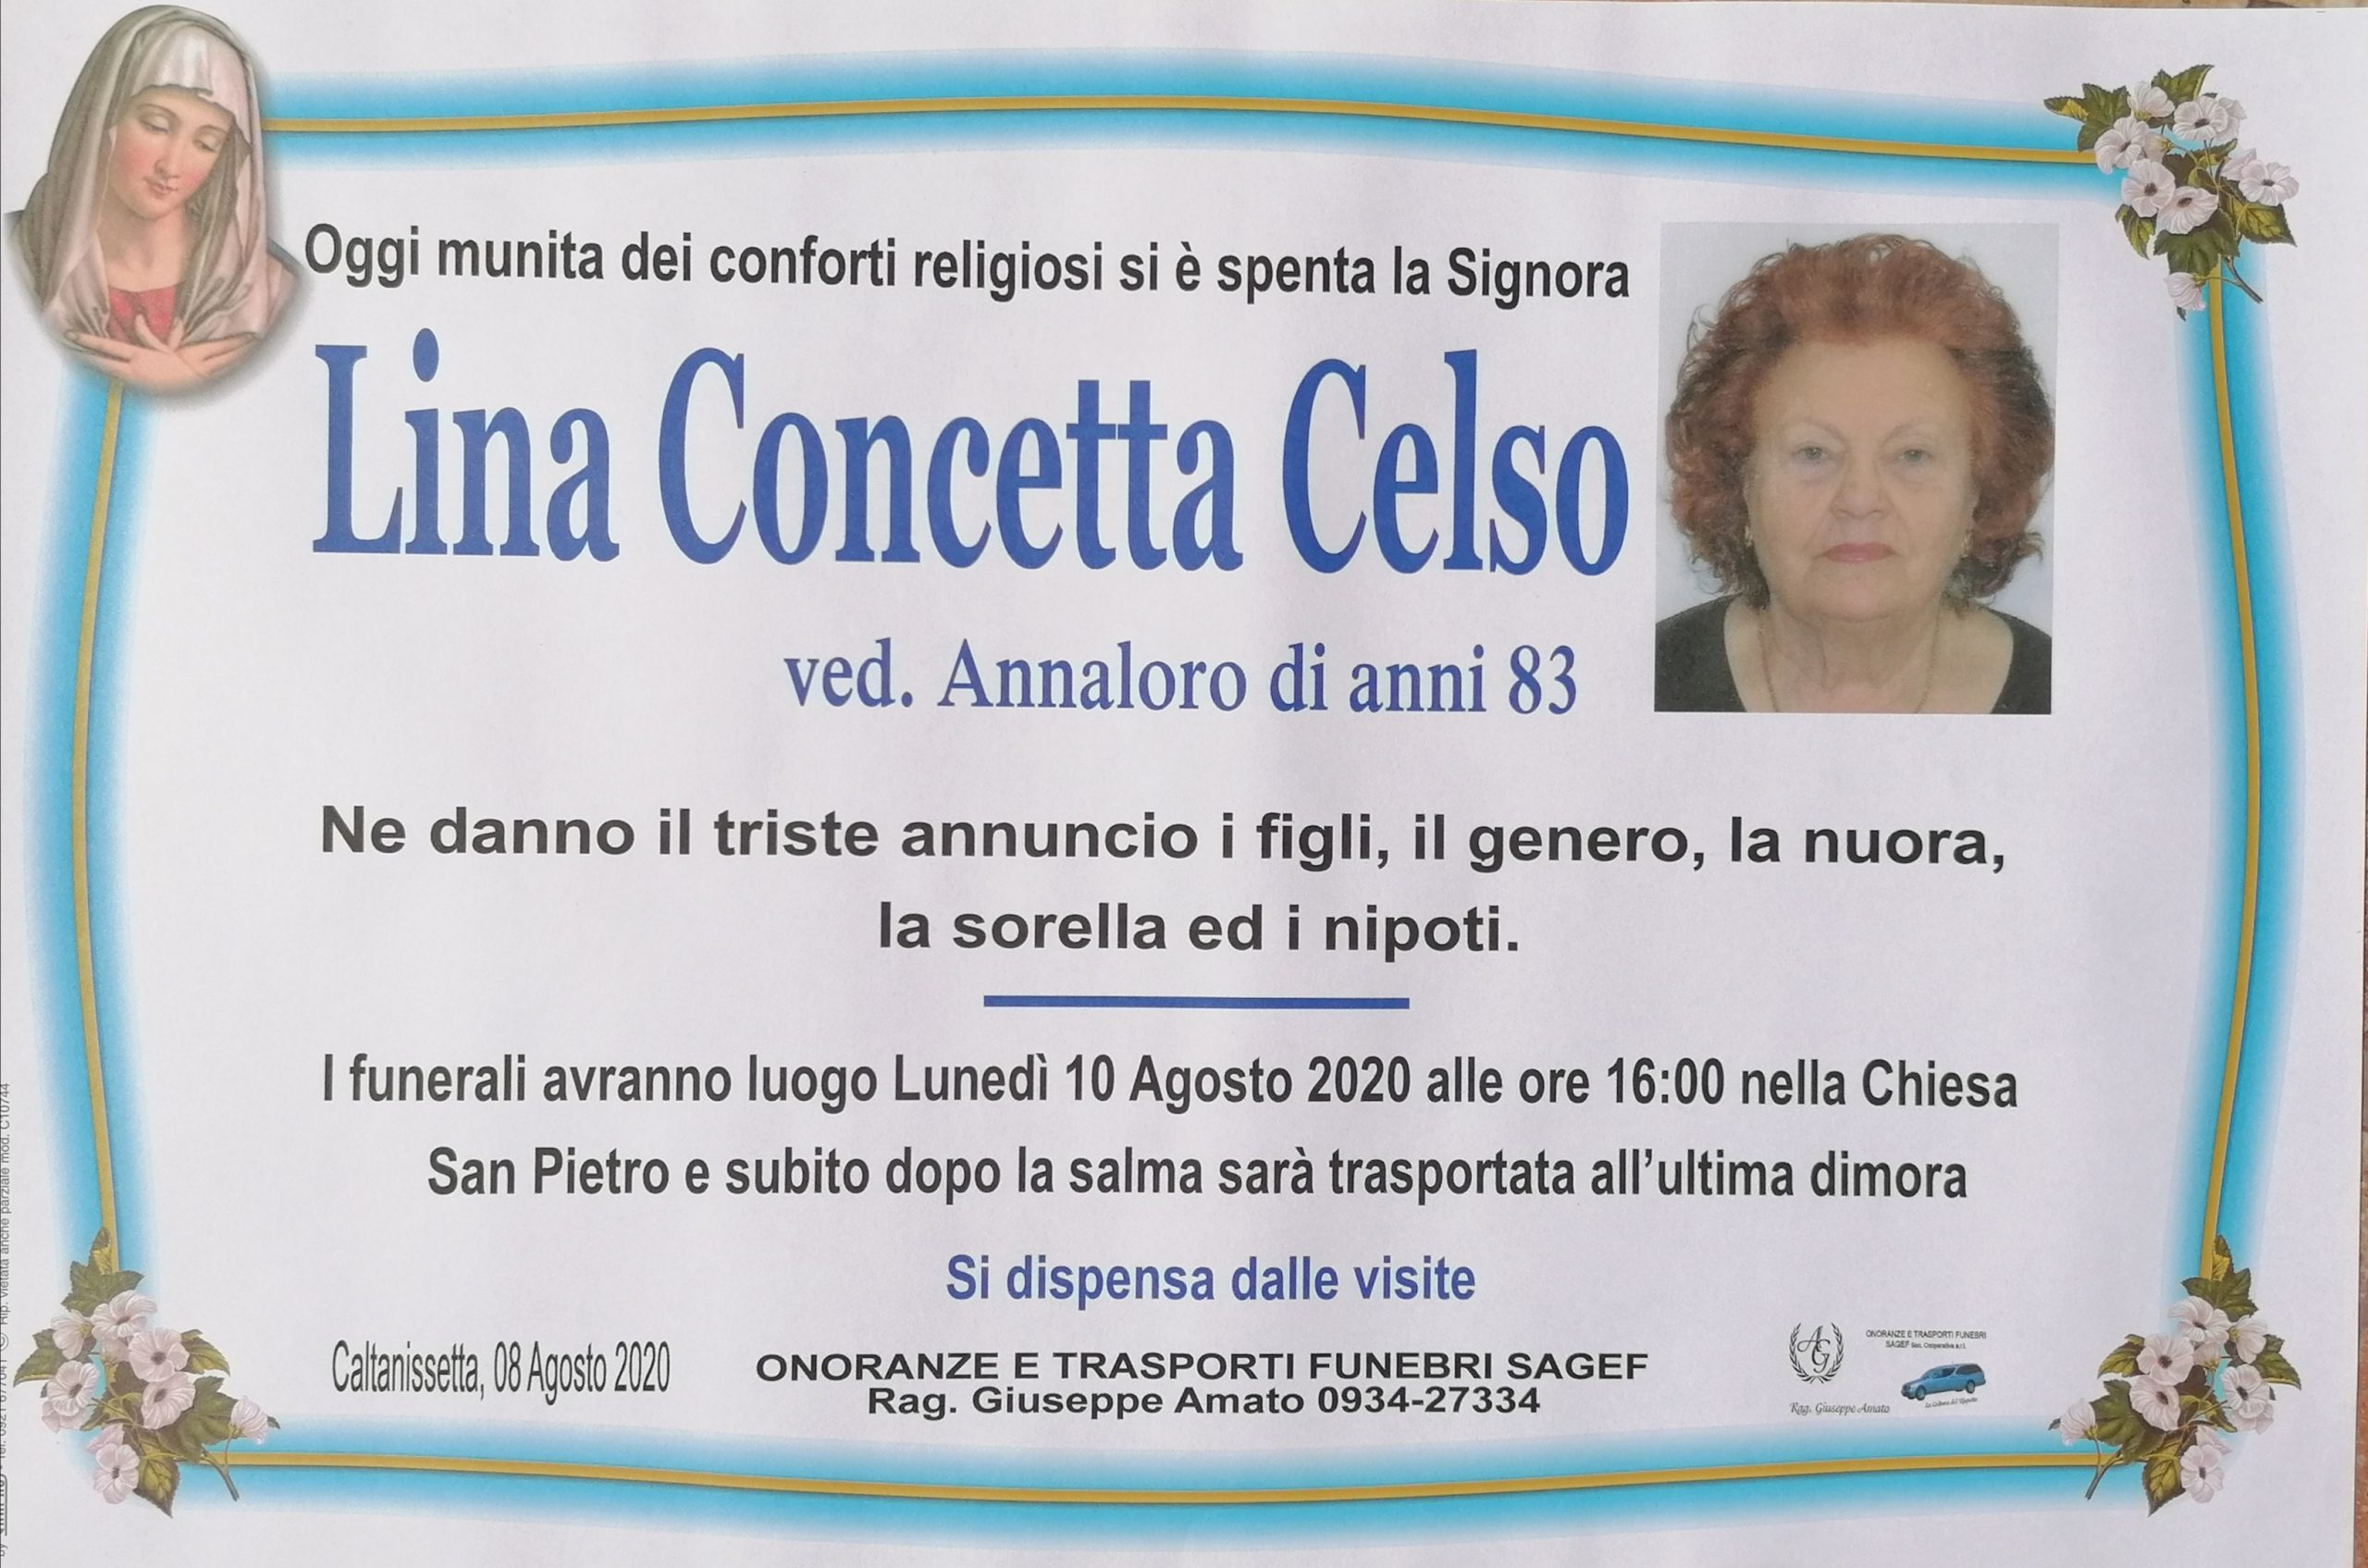 Lina Concetta Celso